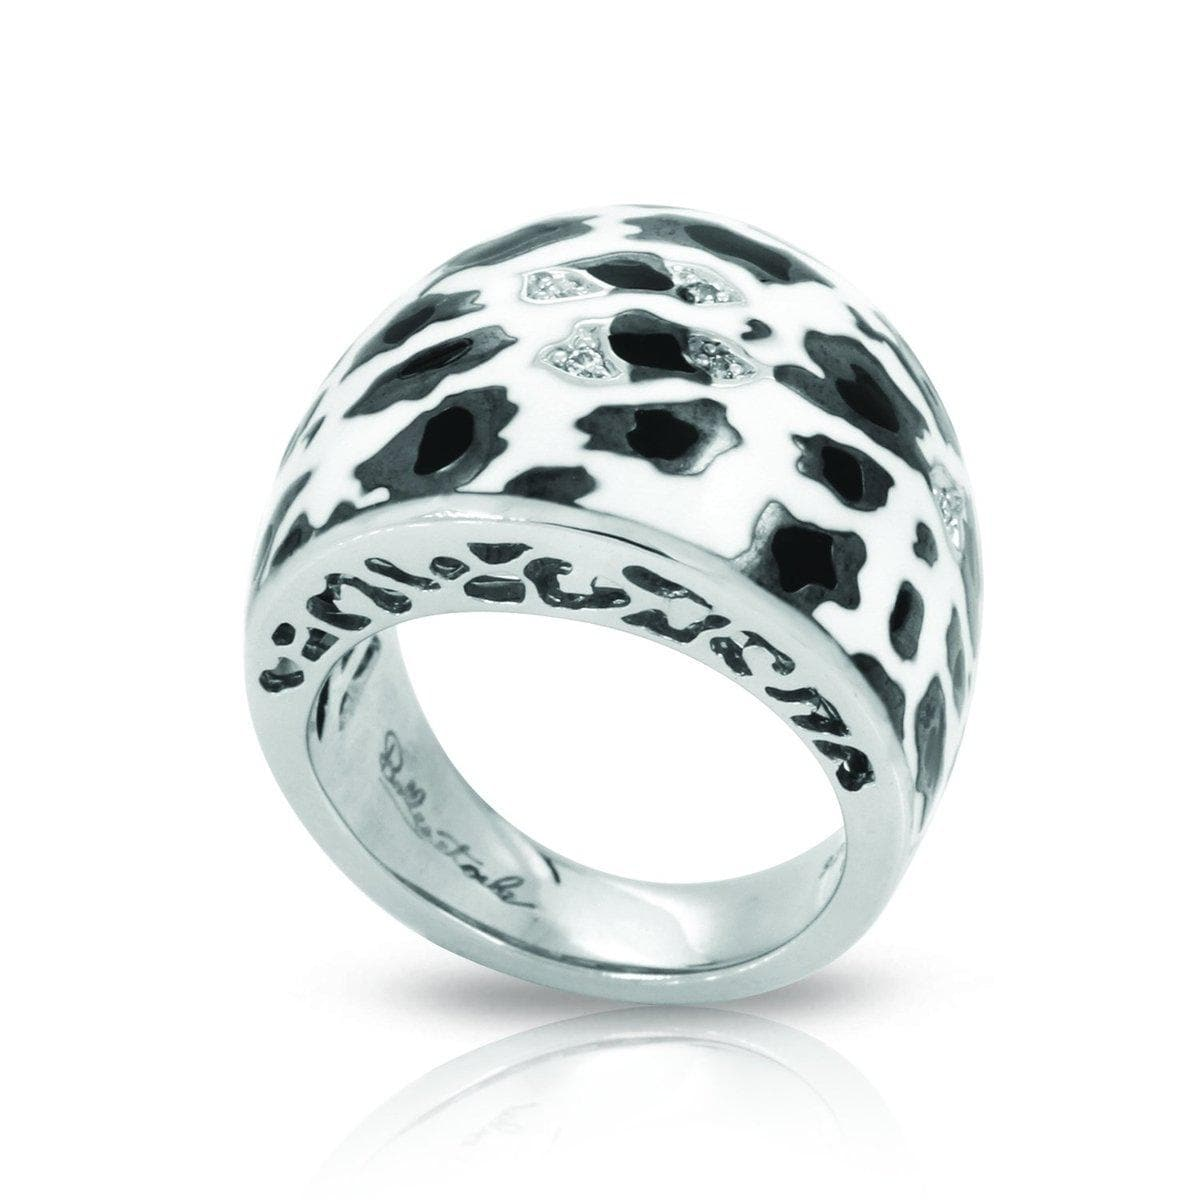 Leopard Black and White Ring-Belle Etoile-Renee Taylor Gallery